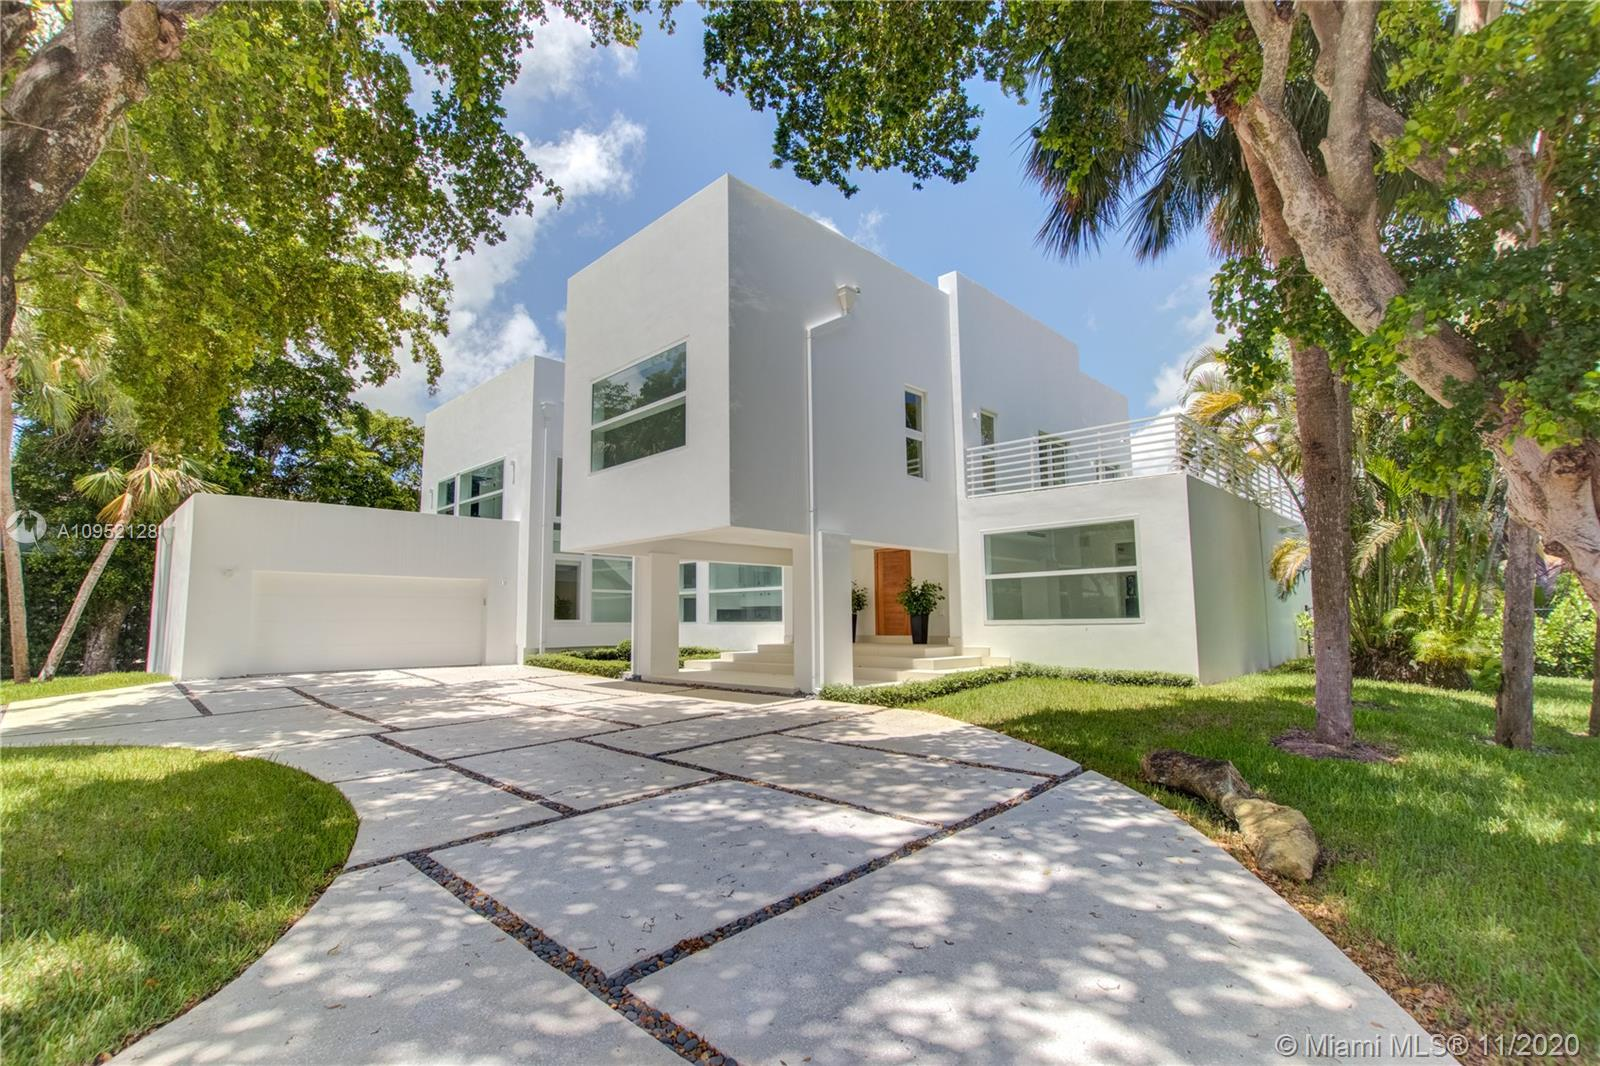 This custom built modern home stands out from the traditional and Mediterranean homes that are common in Cocoplum. As you enter the foyer you are welcomed by an open floor plan that allows you to take in the beauty of the family areas, and oversized pool patio area. 7-bedroom, 9-bathroom residence with office, den, guest quarters, and maid's room is perfect for entertaining. Superior finishes set this home apart. The oversized Snaidero kitchen with state of the art appliances, double dishwashers and a large wine fridge, is a chef's delight. The 3rd floor has guest quarters with a lovely bedroom, sitting area, large bathroom. Oversized windows to enjoy the beauty of Cocoplum. As per owner the square footage is larger than public records currently being reviewed by the county to correct.